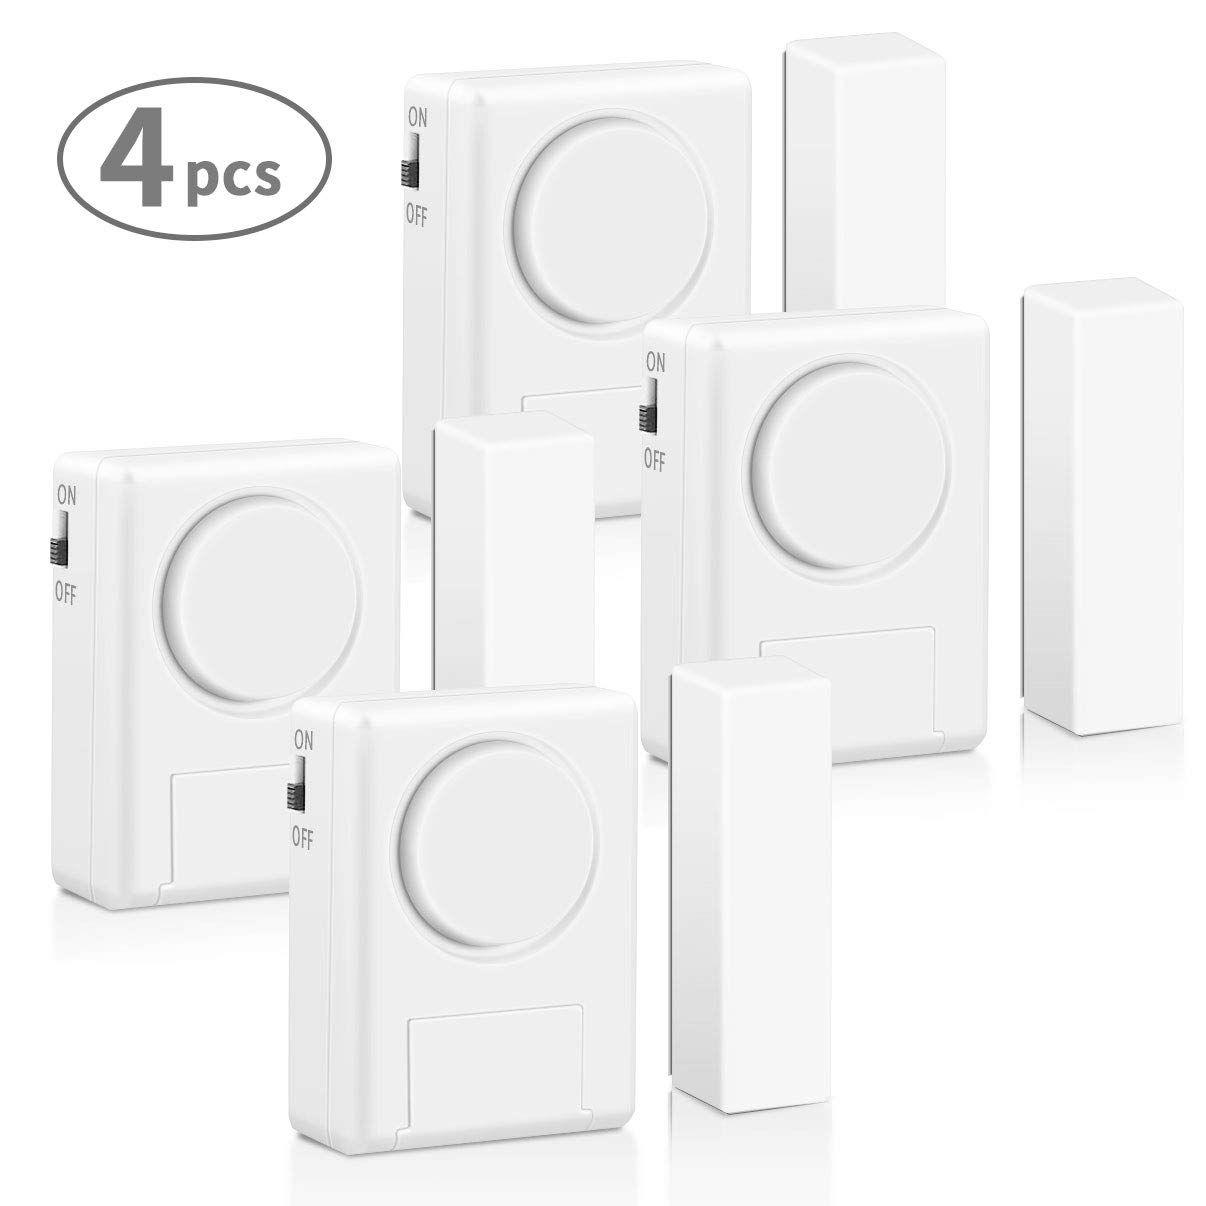 LingsFire Magnetically Triggered Alarms for Doors or Windows Home Security Window/Door Alarm Kit (4-Pack), Loud 100 dB Alarm